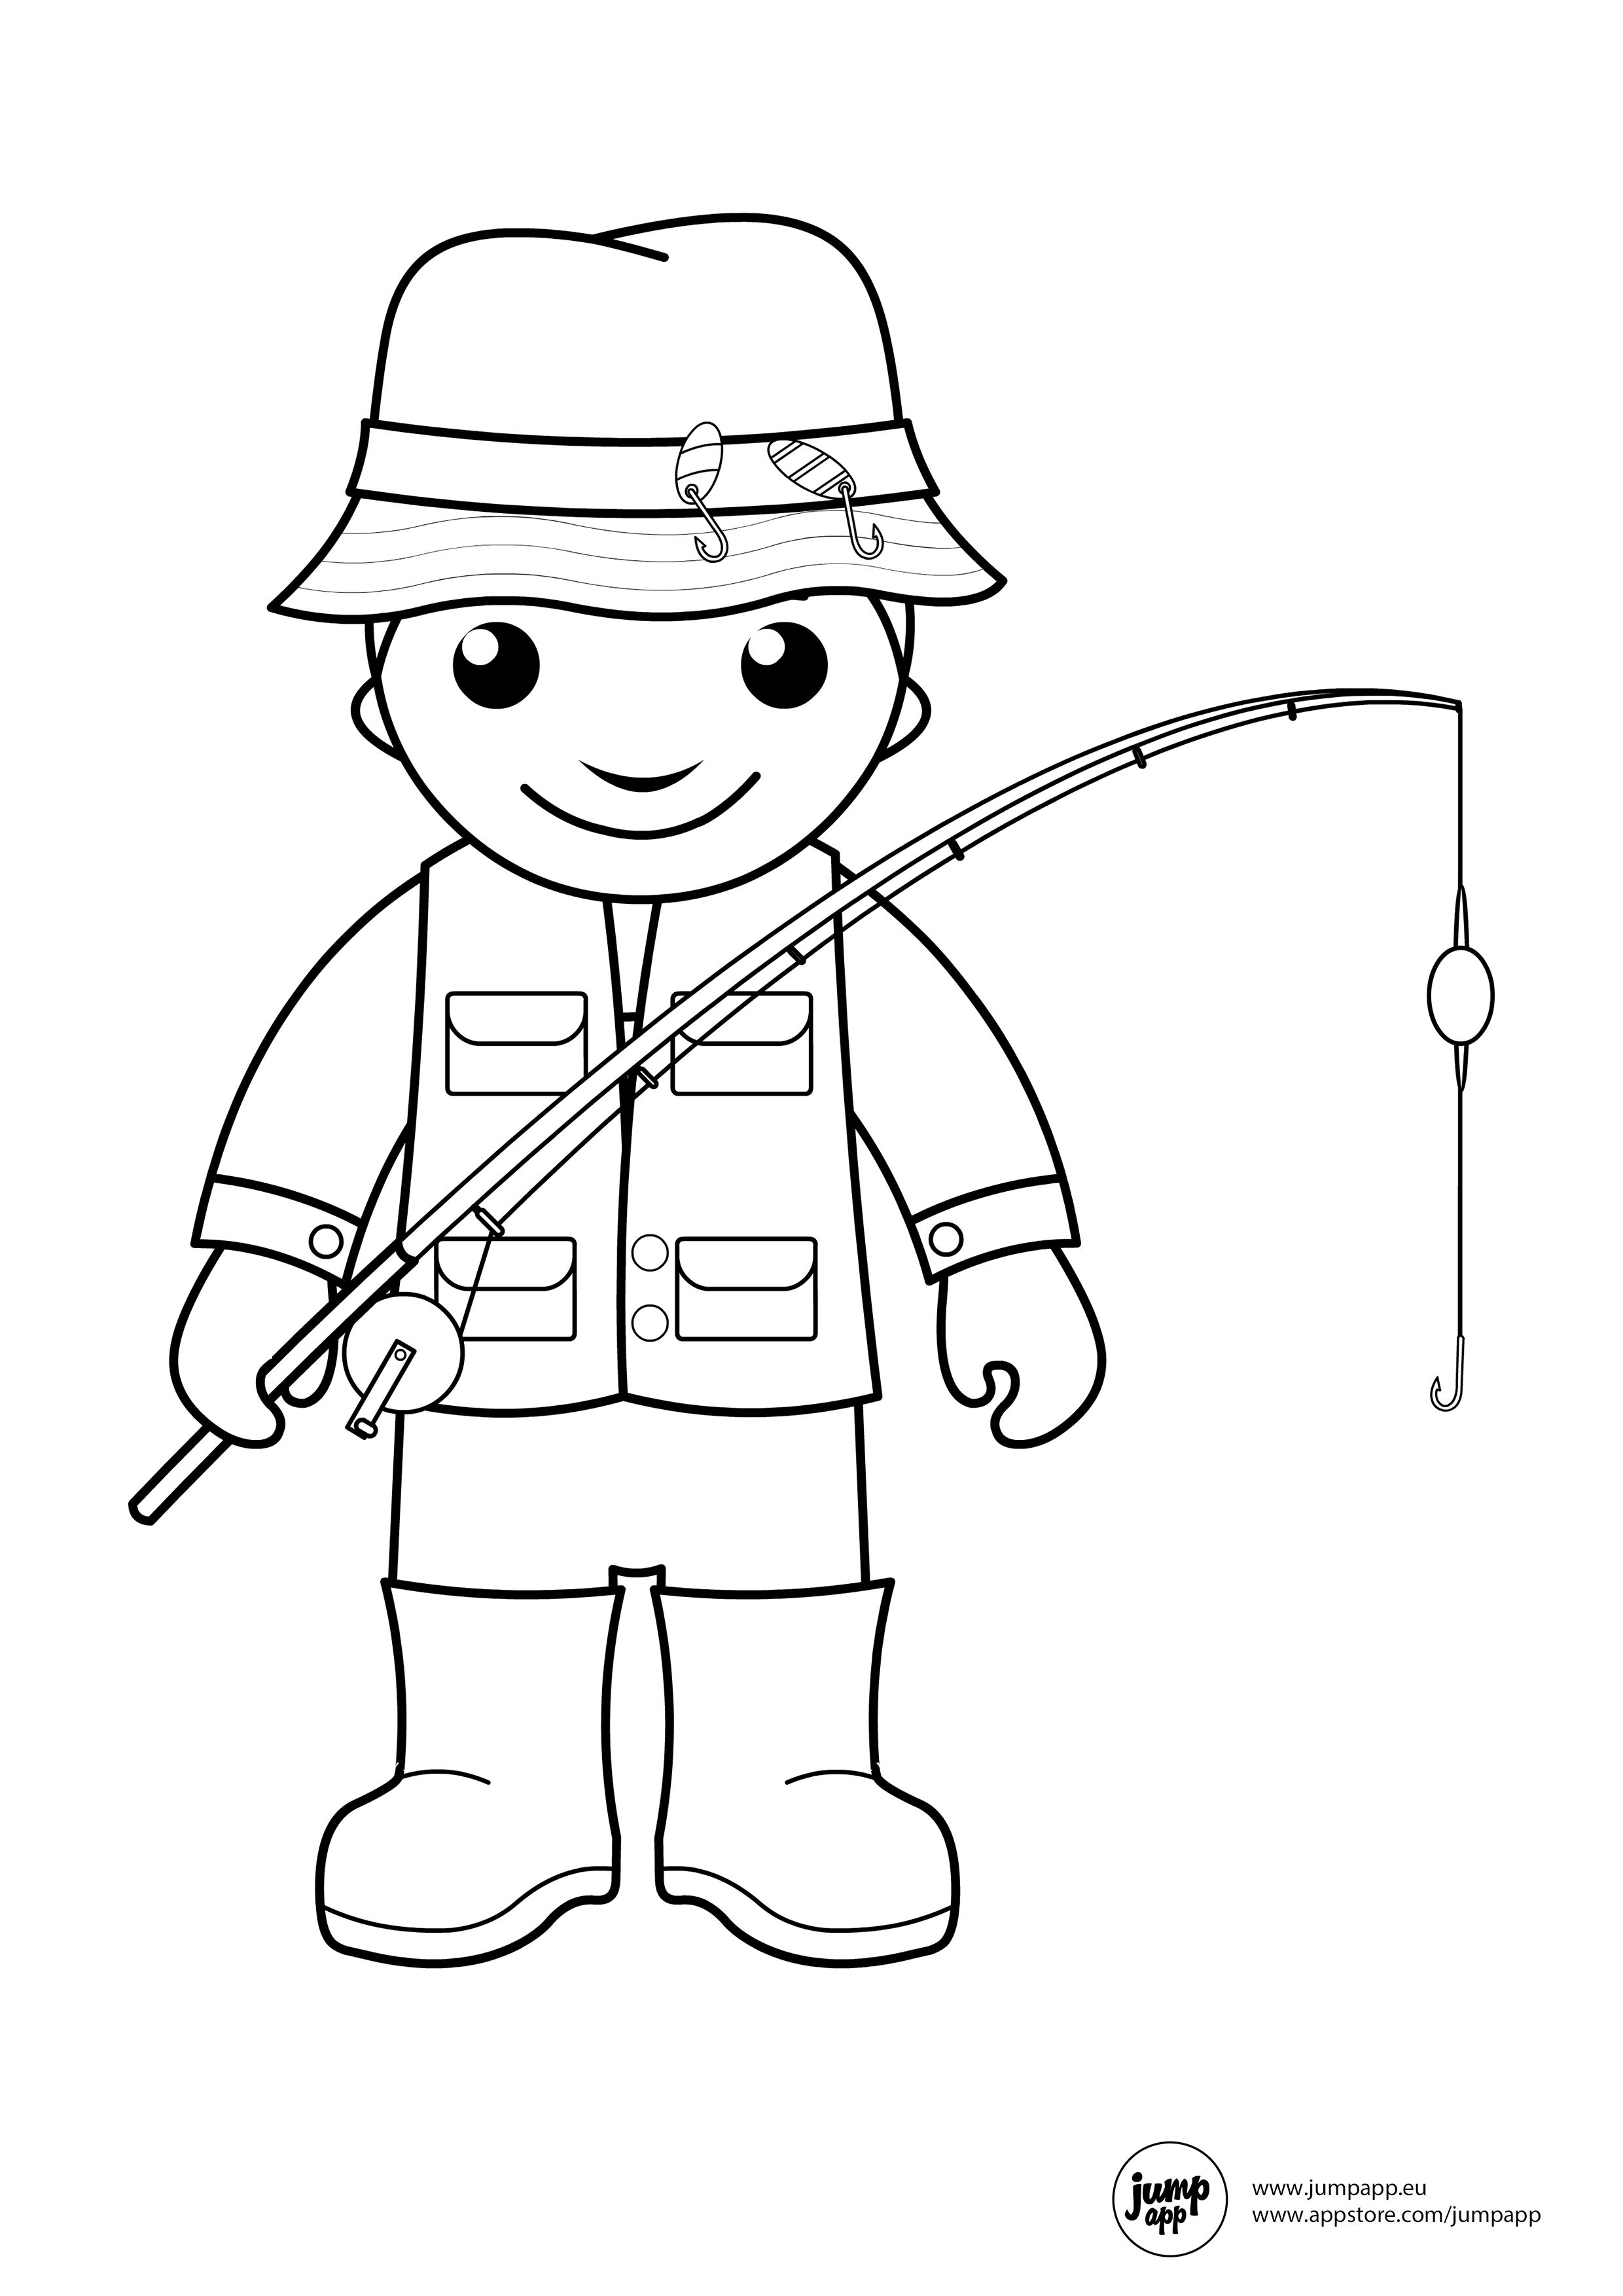 Fisherman Coloring Pages Cartoon Coloring Pages Coloring Pages Inspirational